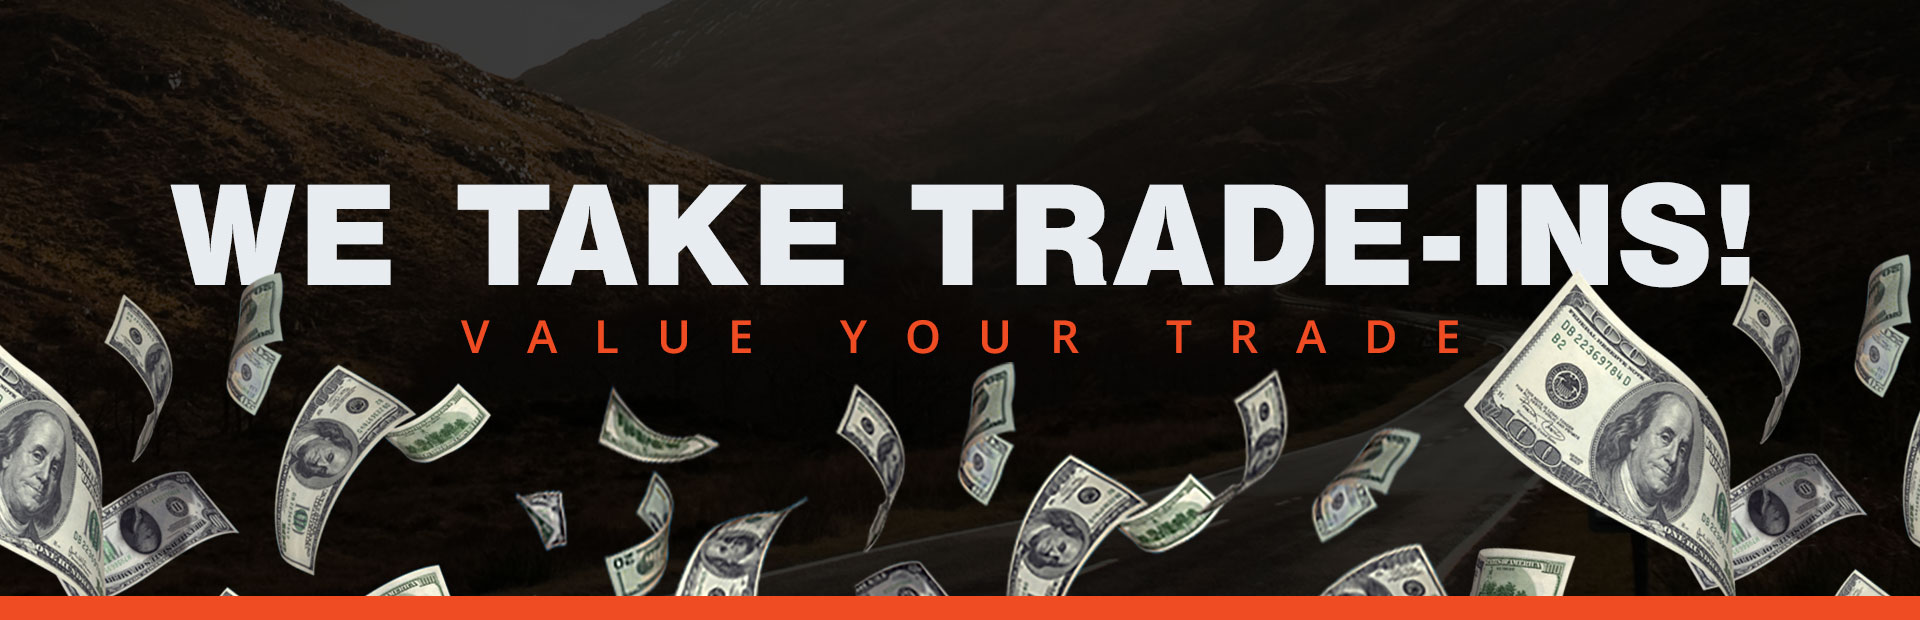 We take trade-ins! Click here to value your trade.